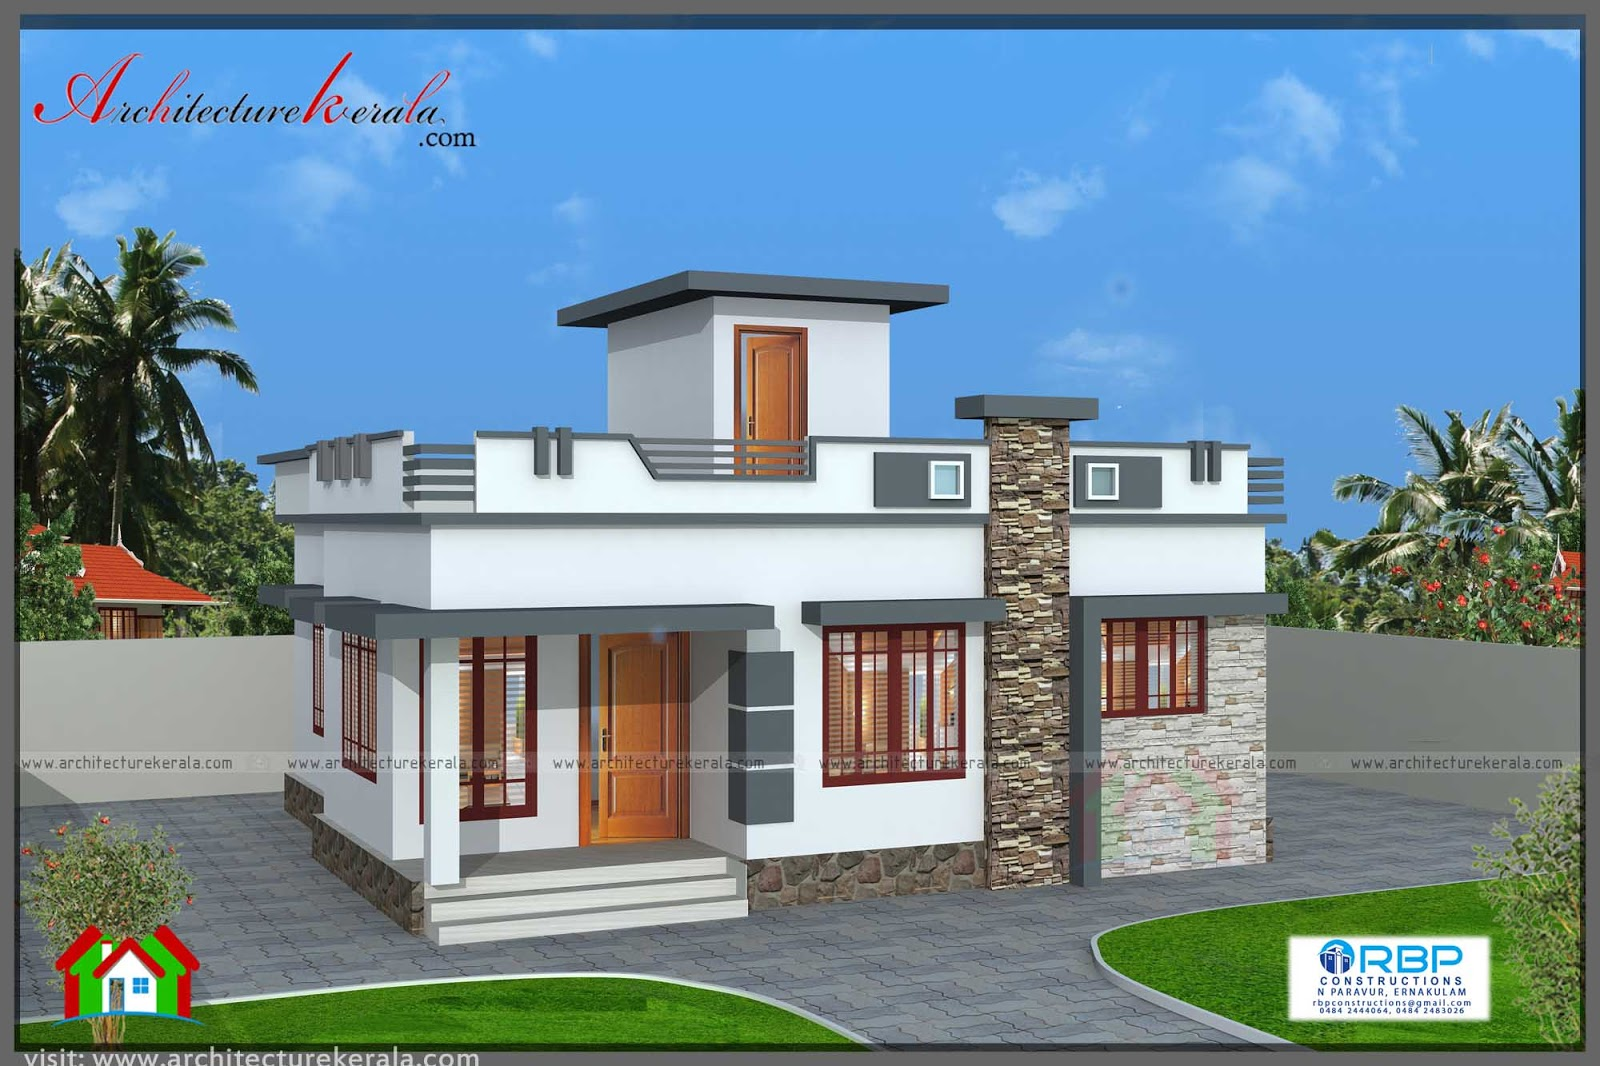 700 sqft plan and elevation for middle class family Plan for 700 sq ft house